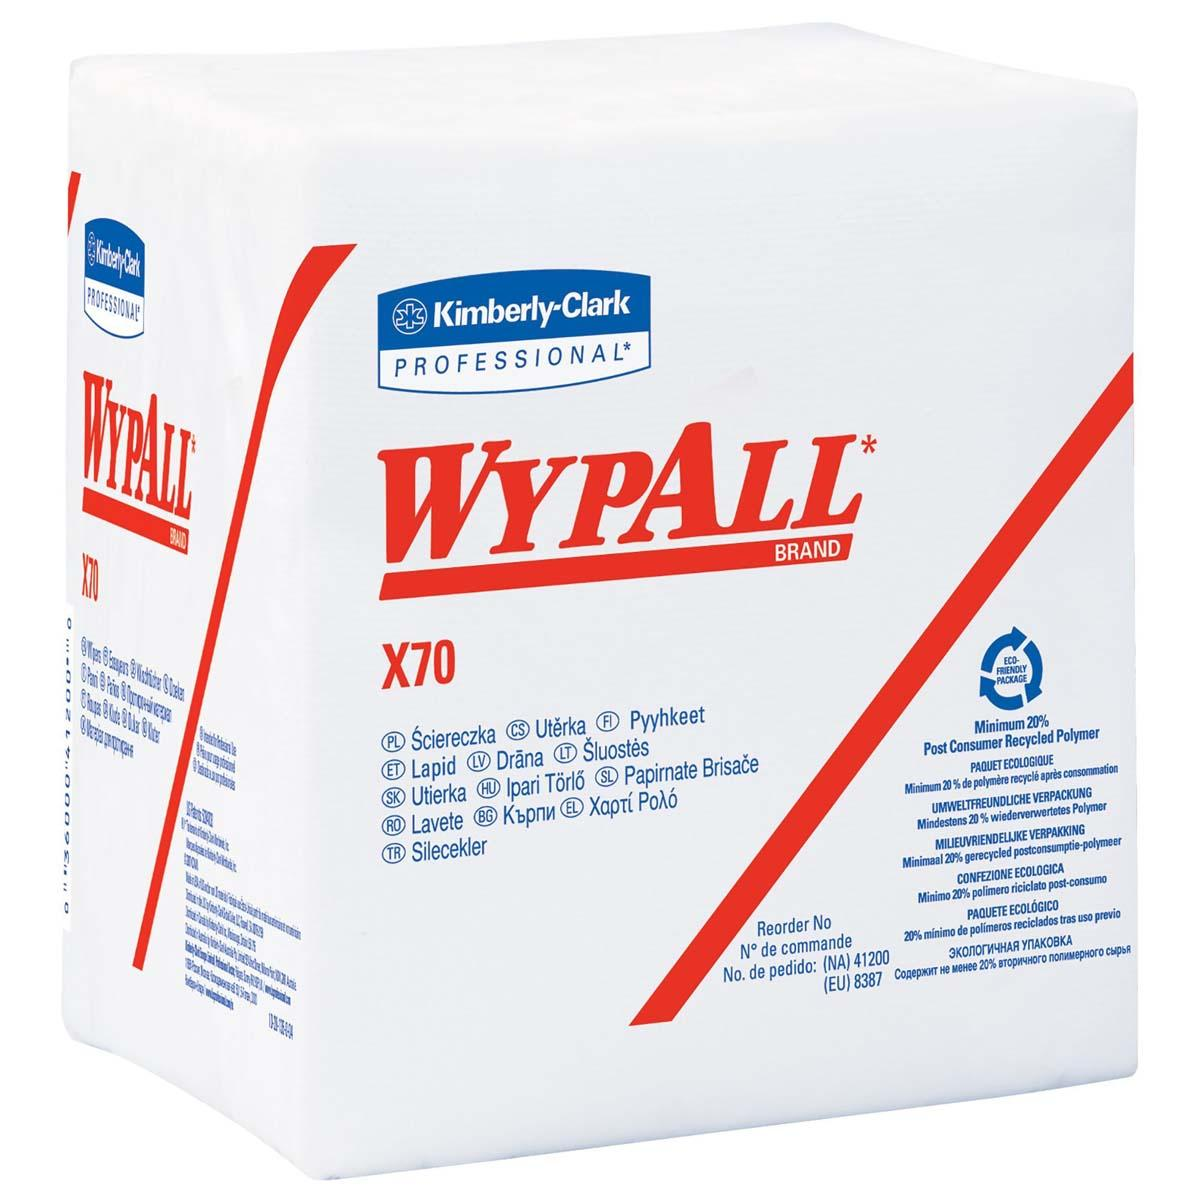 WypAll X70 Extended Use Reusable Wipers (41200), Quarterfold, Long Lasting Performance, White, 12 Packs, 76 Sheets / Pack